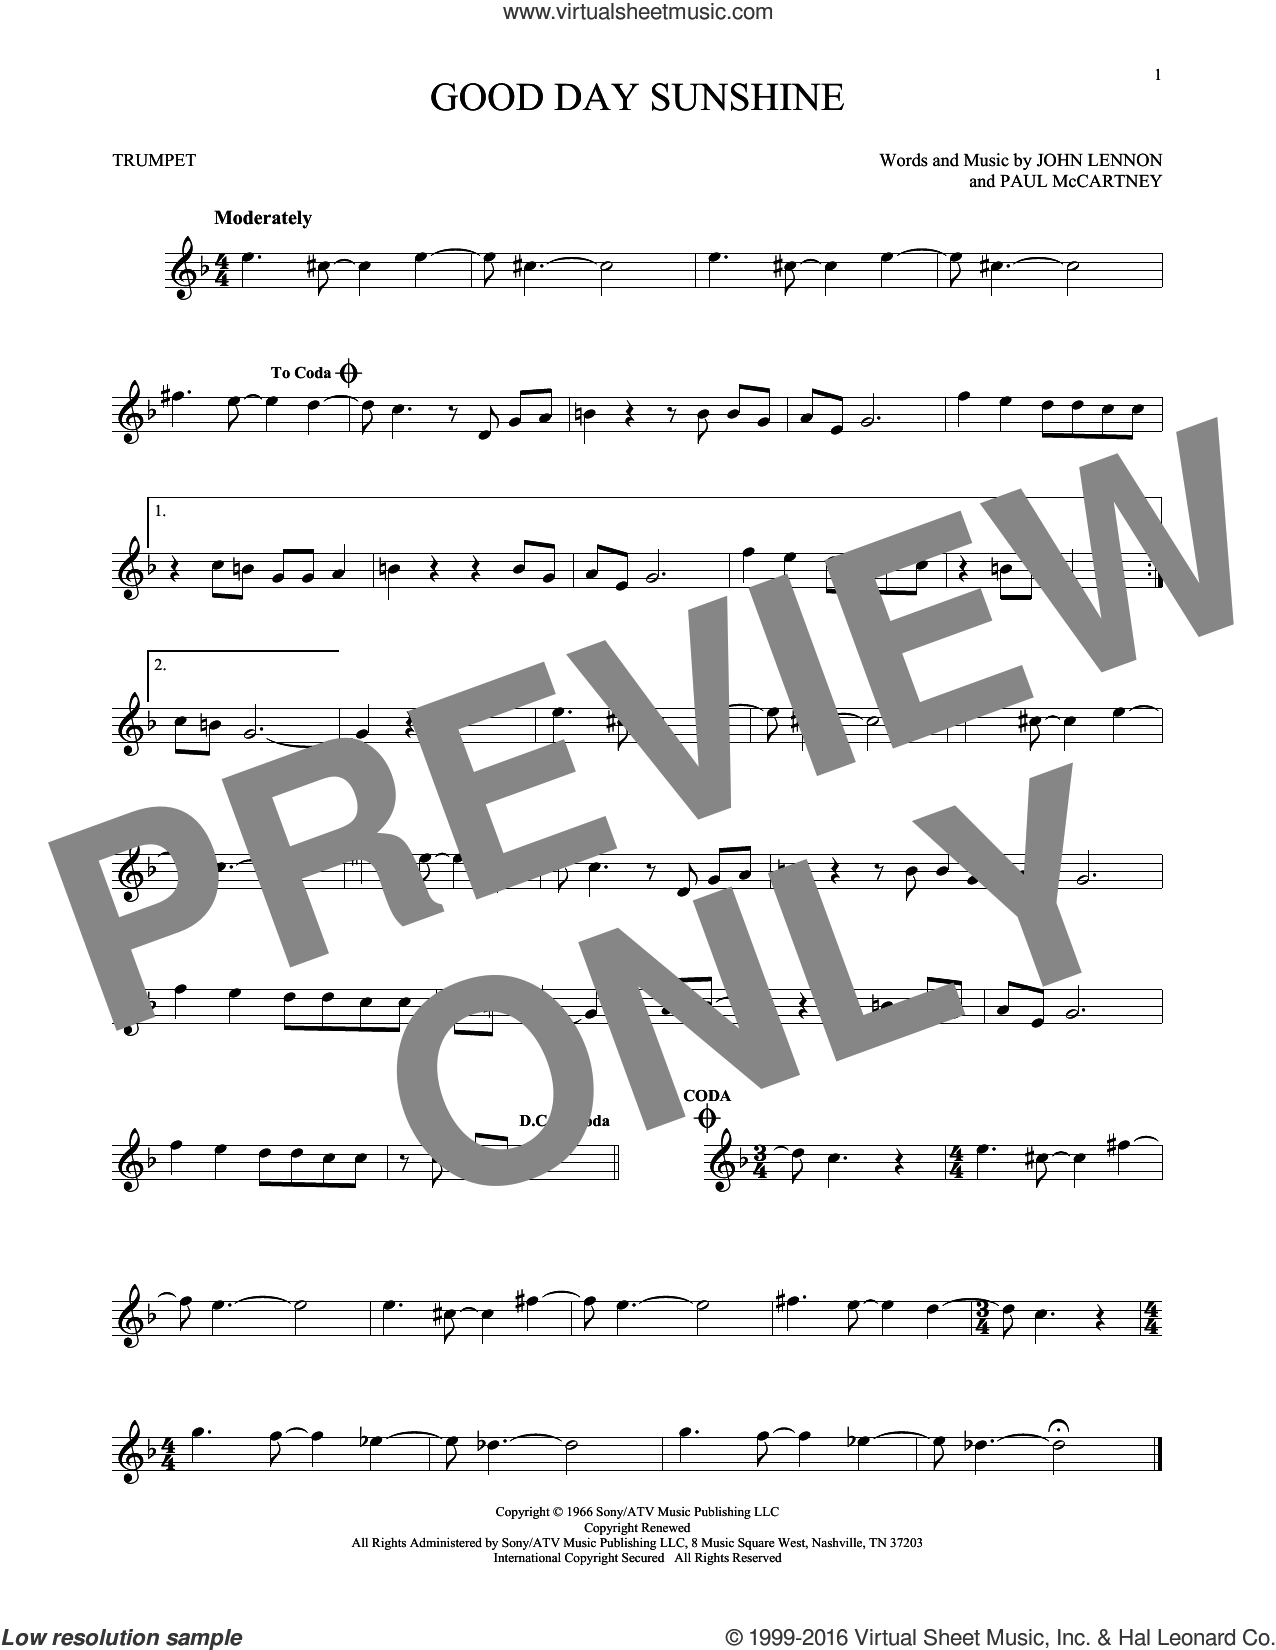 Good Day Sunshine sheet music for trumpet solo by The Beatles, John Lennon and Paul McCartney, intermediate